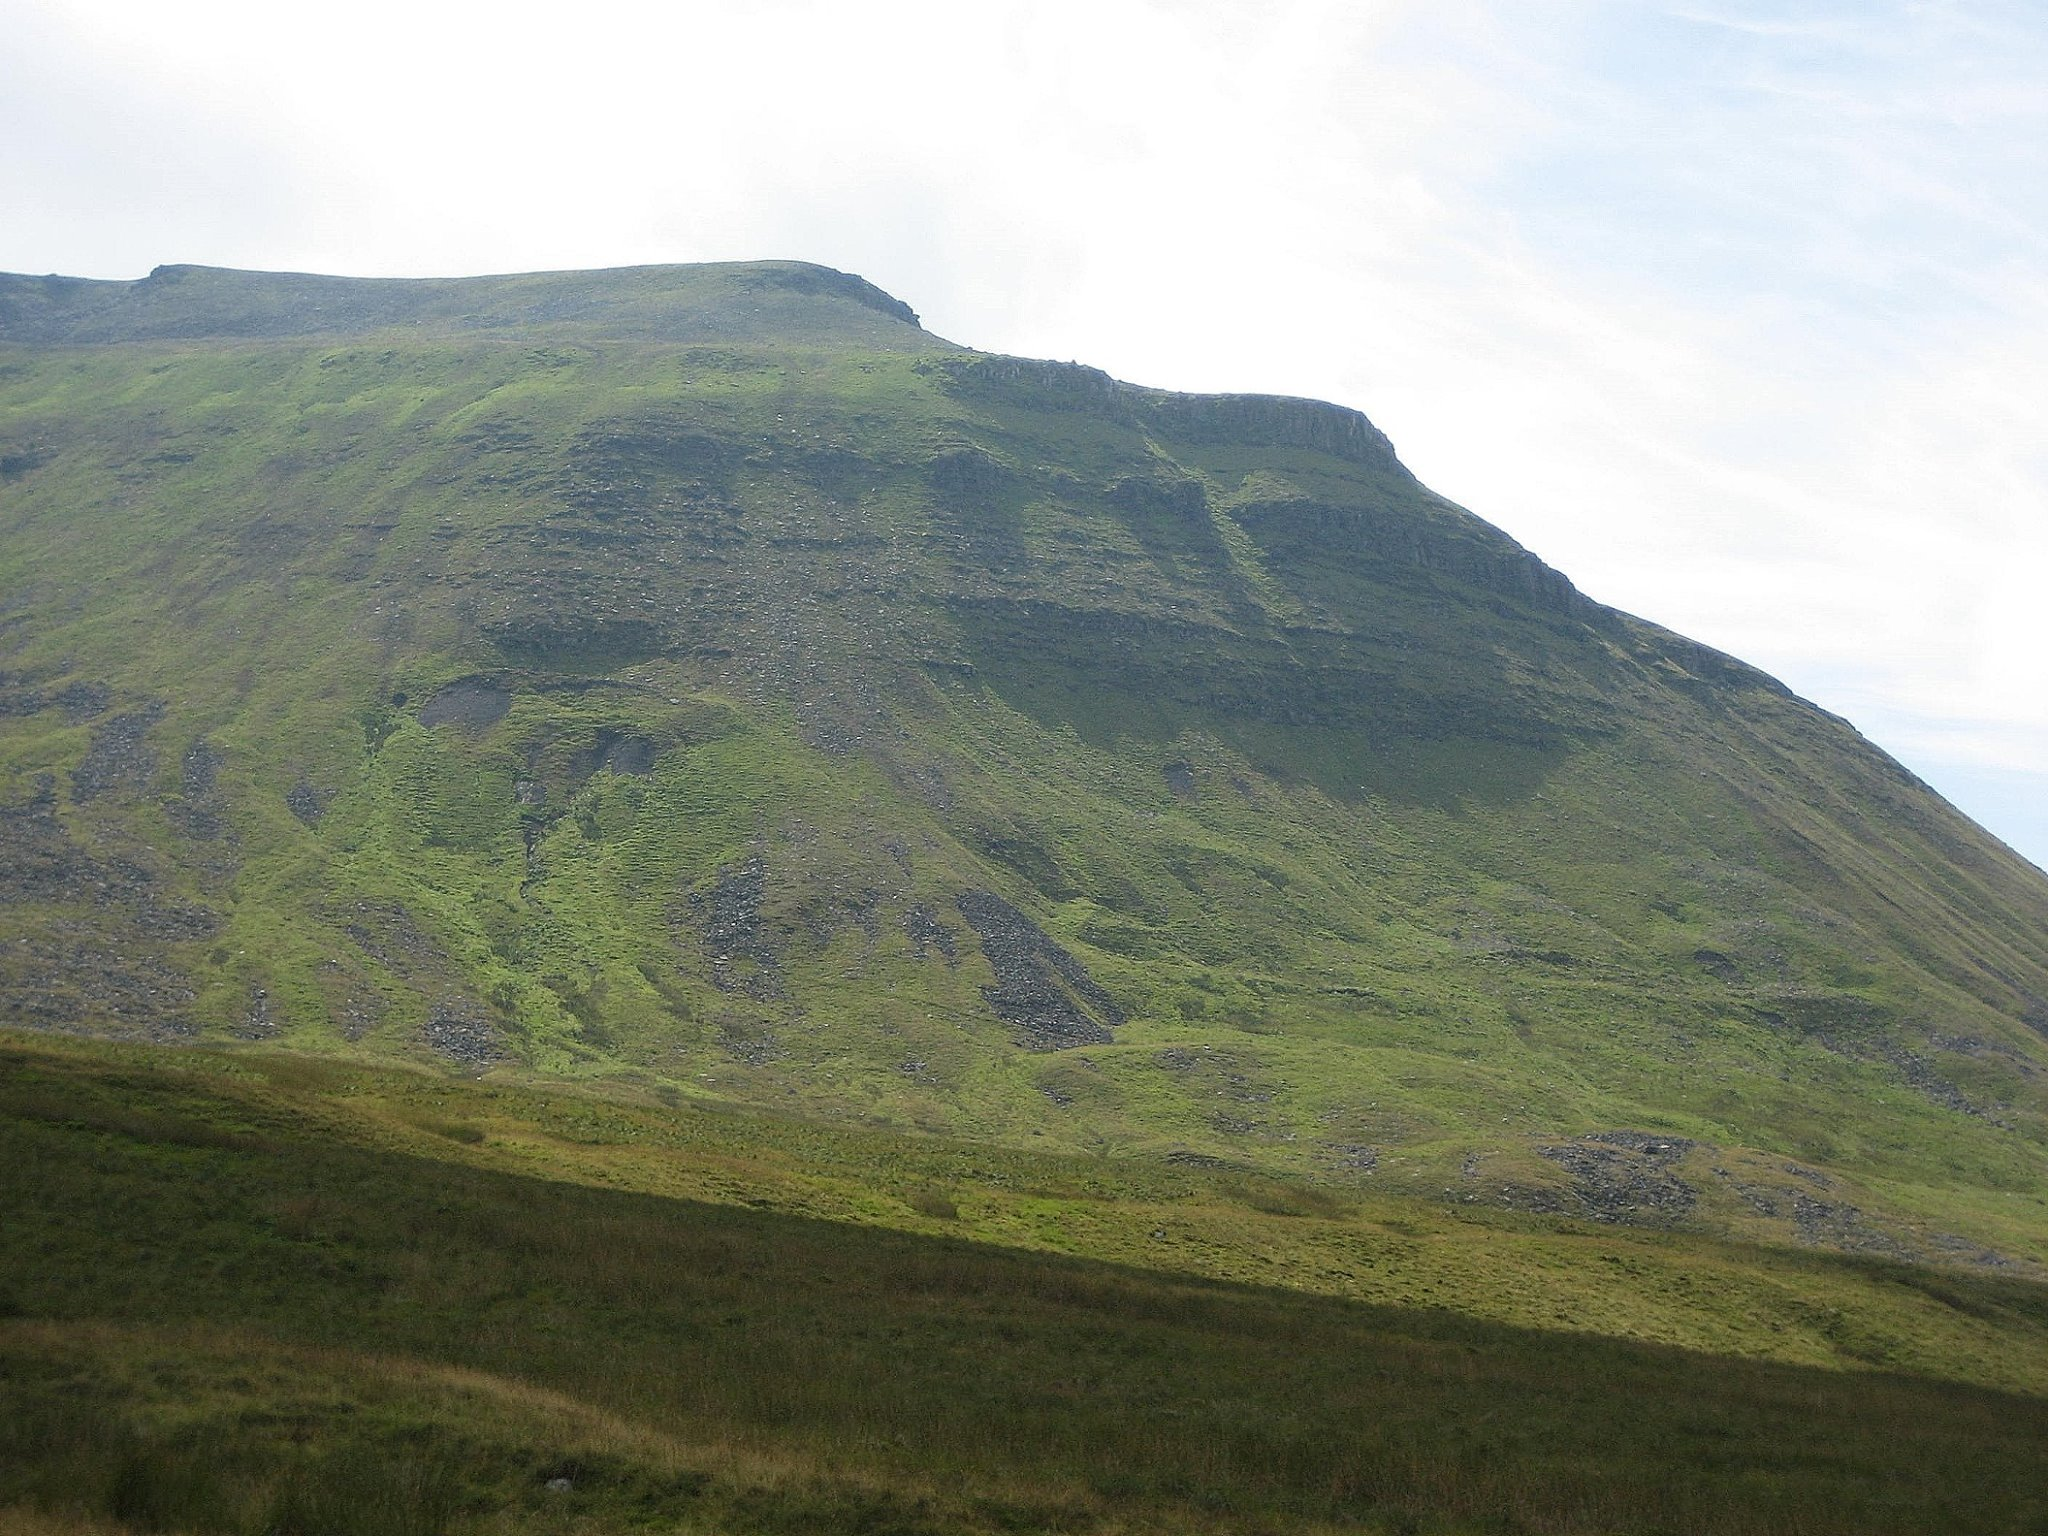 The great pyramid of Ingleborough made up of the Yoredale Series, formed by fluctuating sea levels.  At top left is the main gritstone cap, with the first buttress below it being of the Main Limestone – the highest limestone on the mountain.  Just below, a sandstone buttress looks over the Black Shiver landslip. Stephen Oldfield